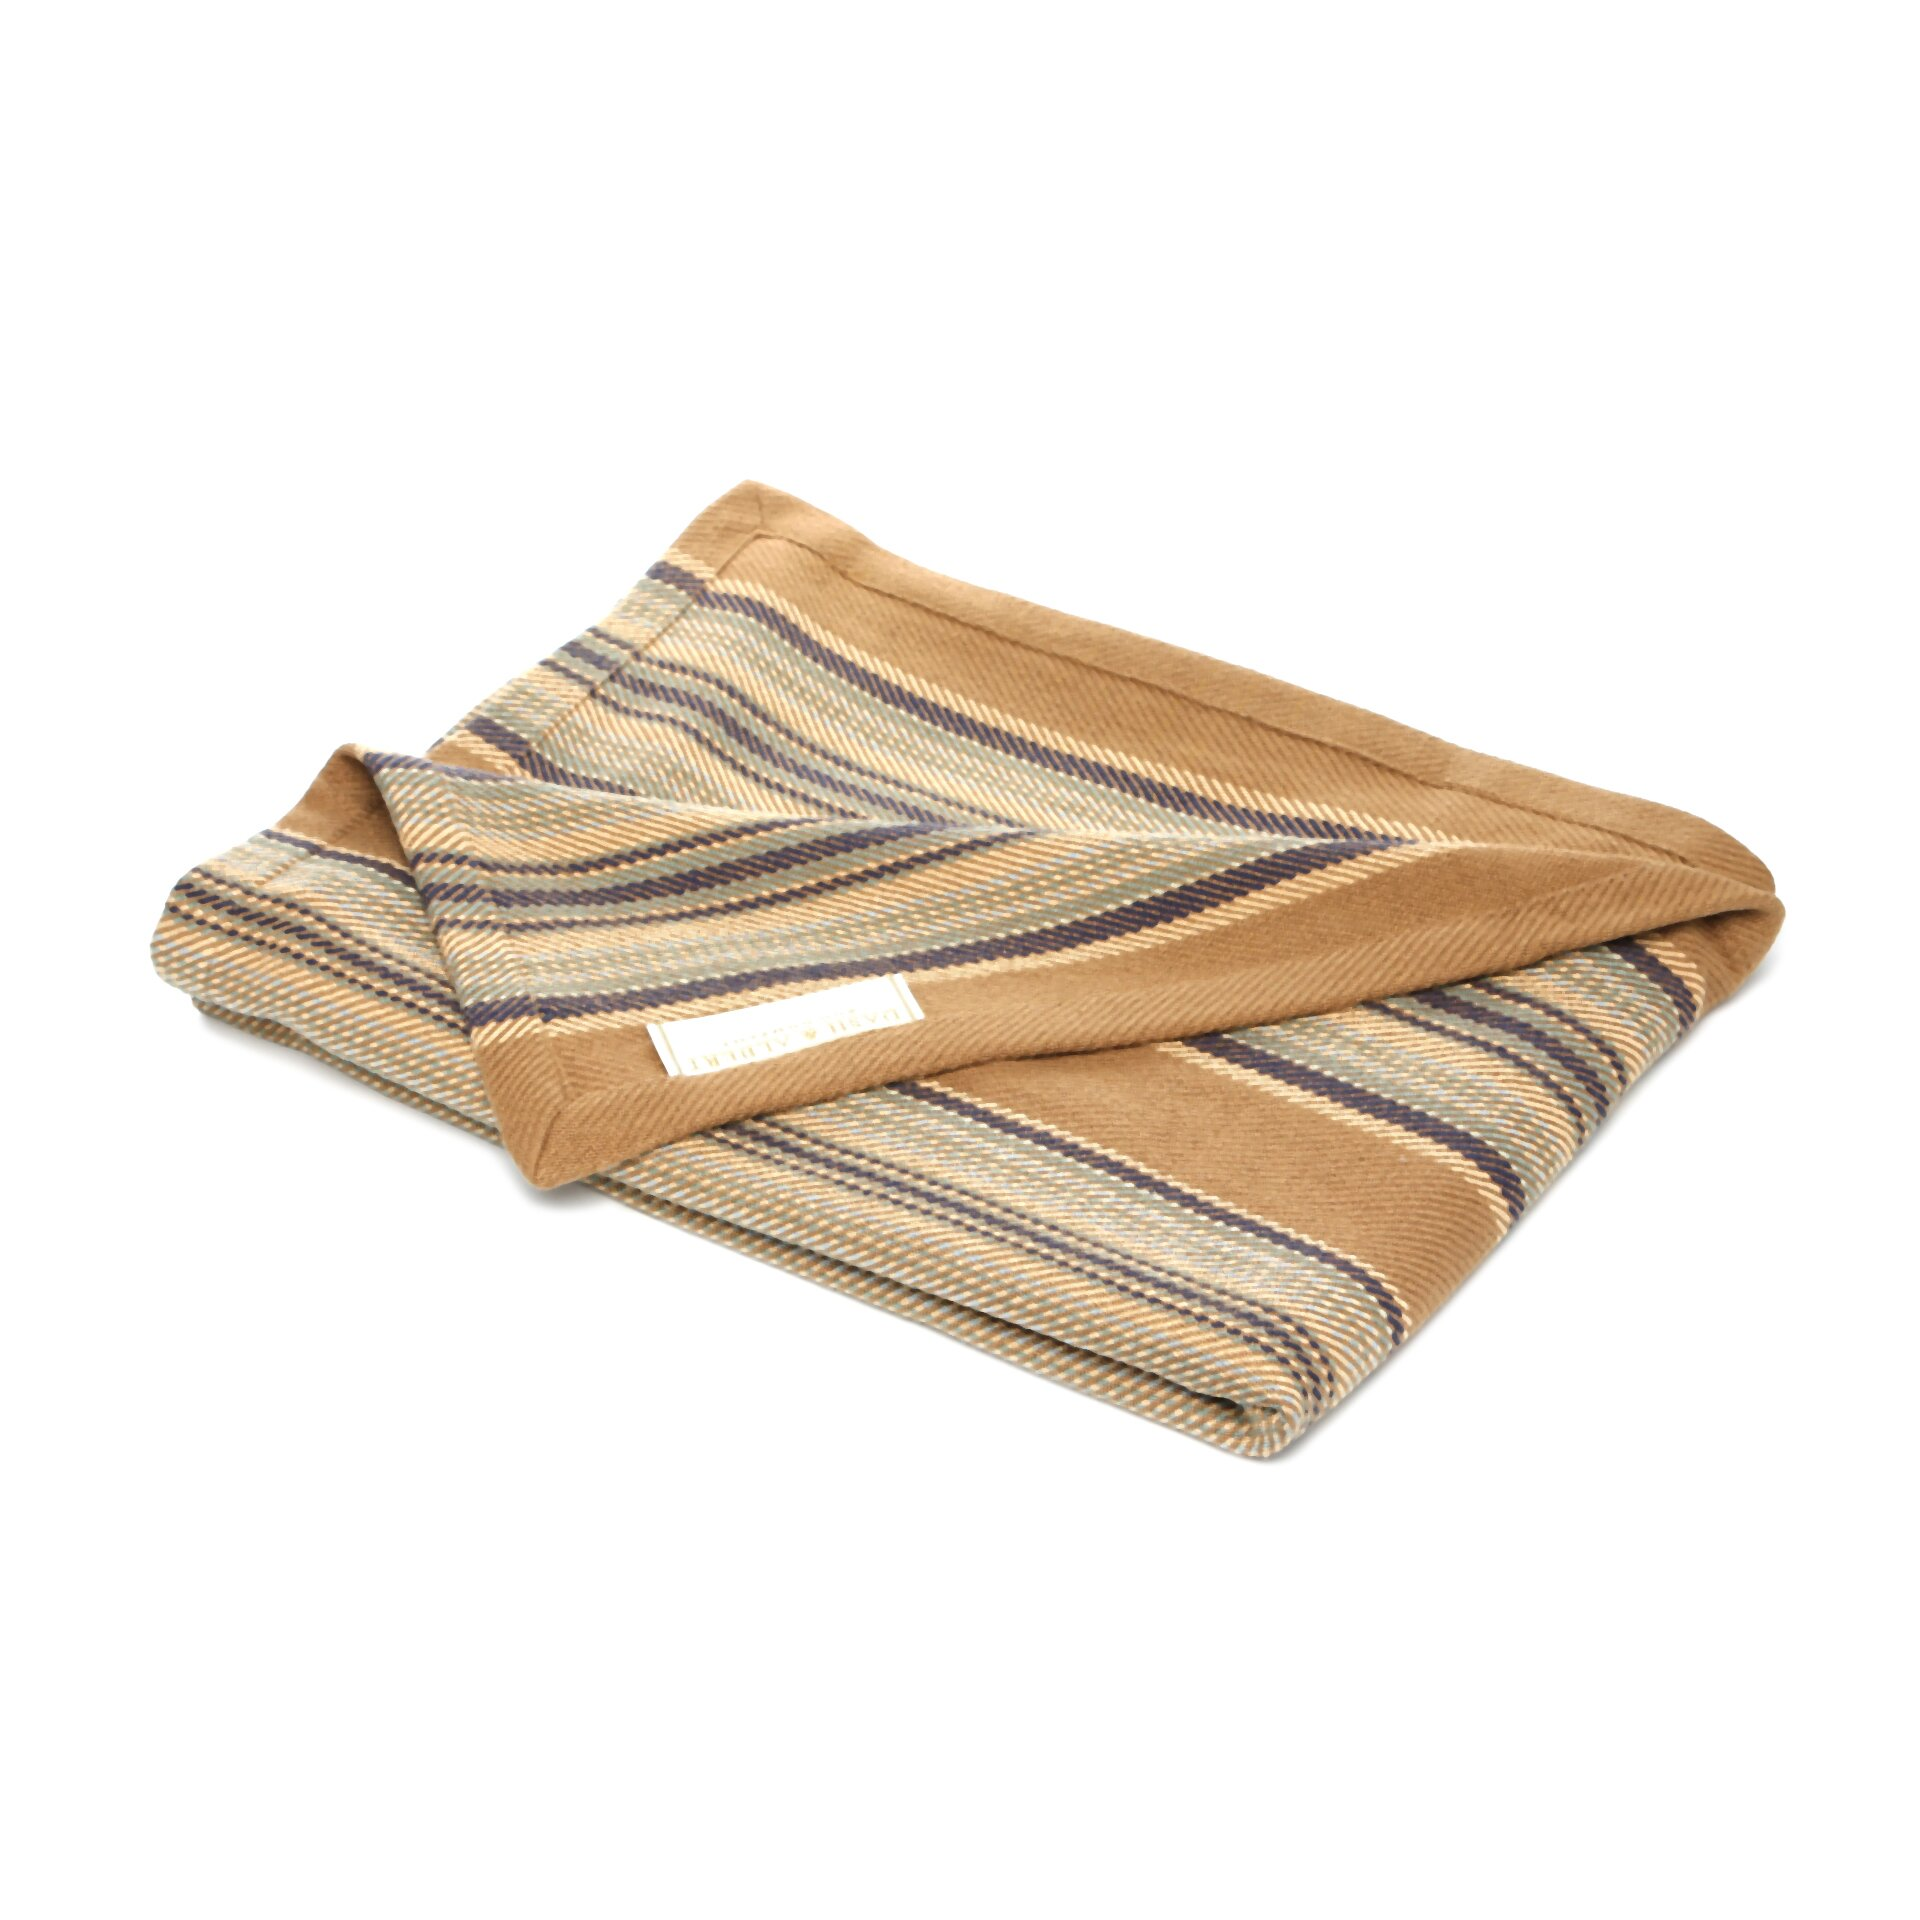 Dash and albert rugs heron stripe woven cotton throw for Dash and albert blankets